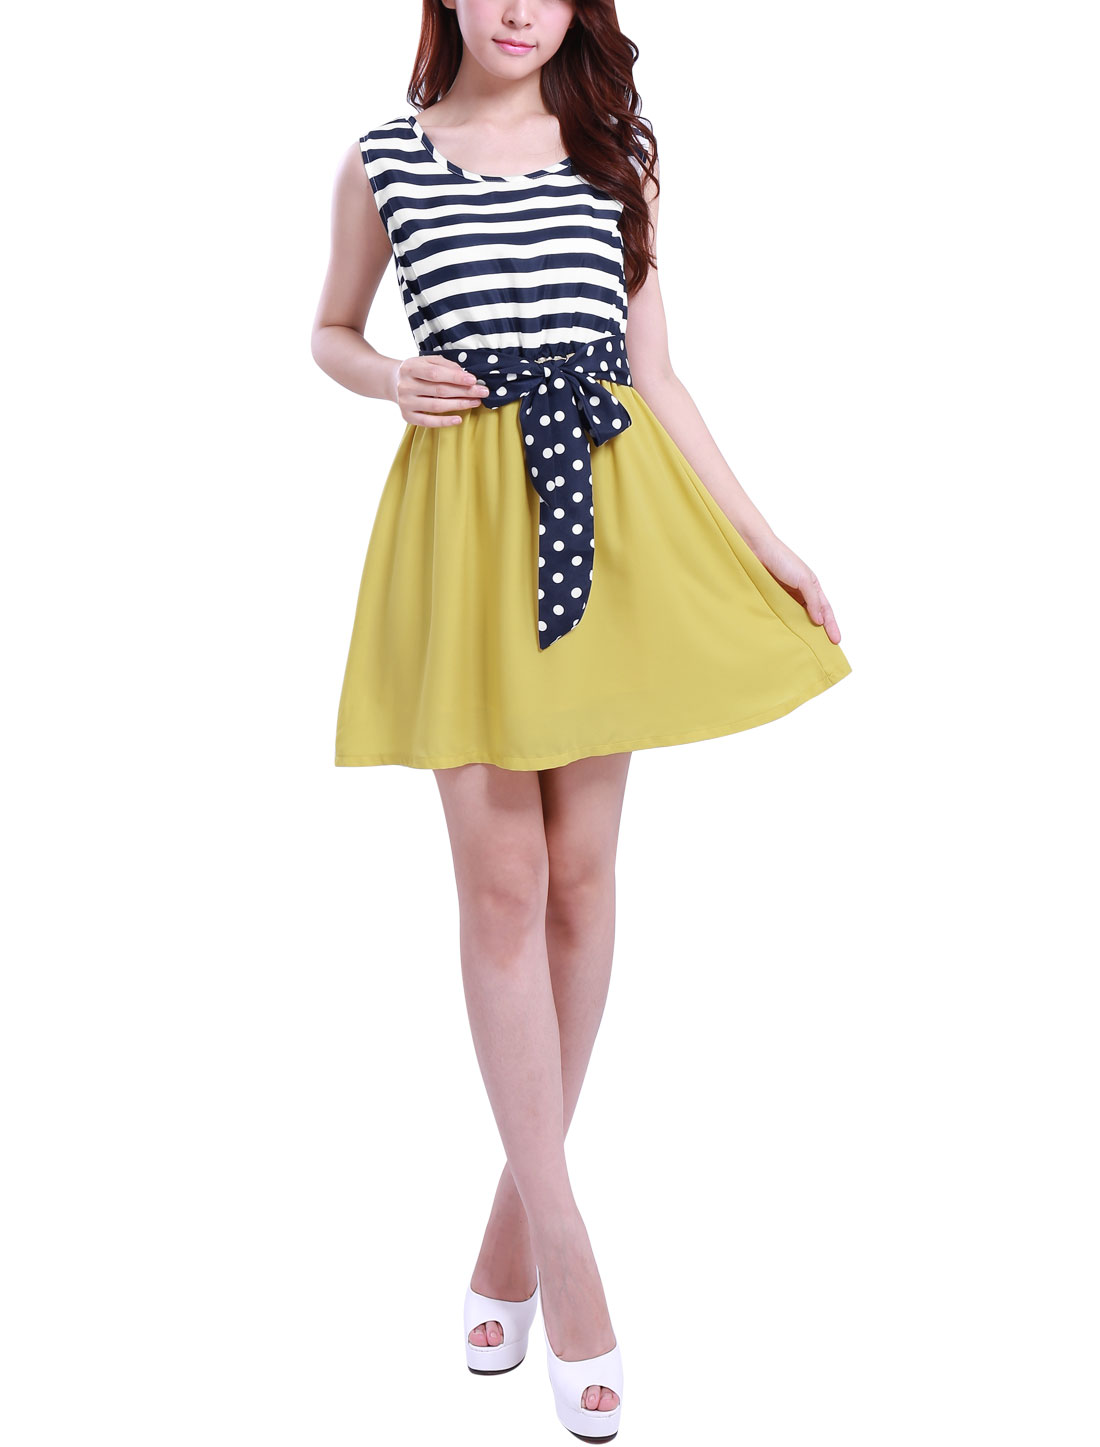 Woman Chic Scoop Neck Sleeveless Striped Mini Dark Blue Yellow Dress S